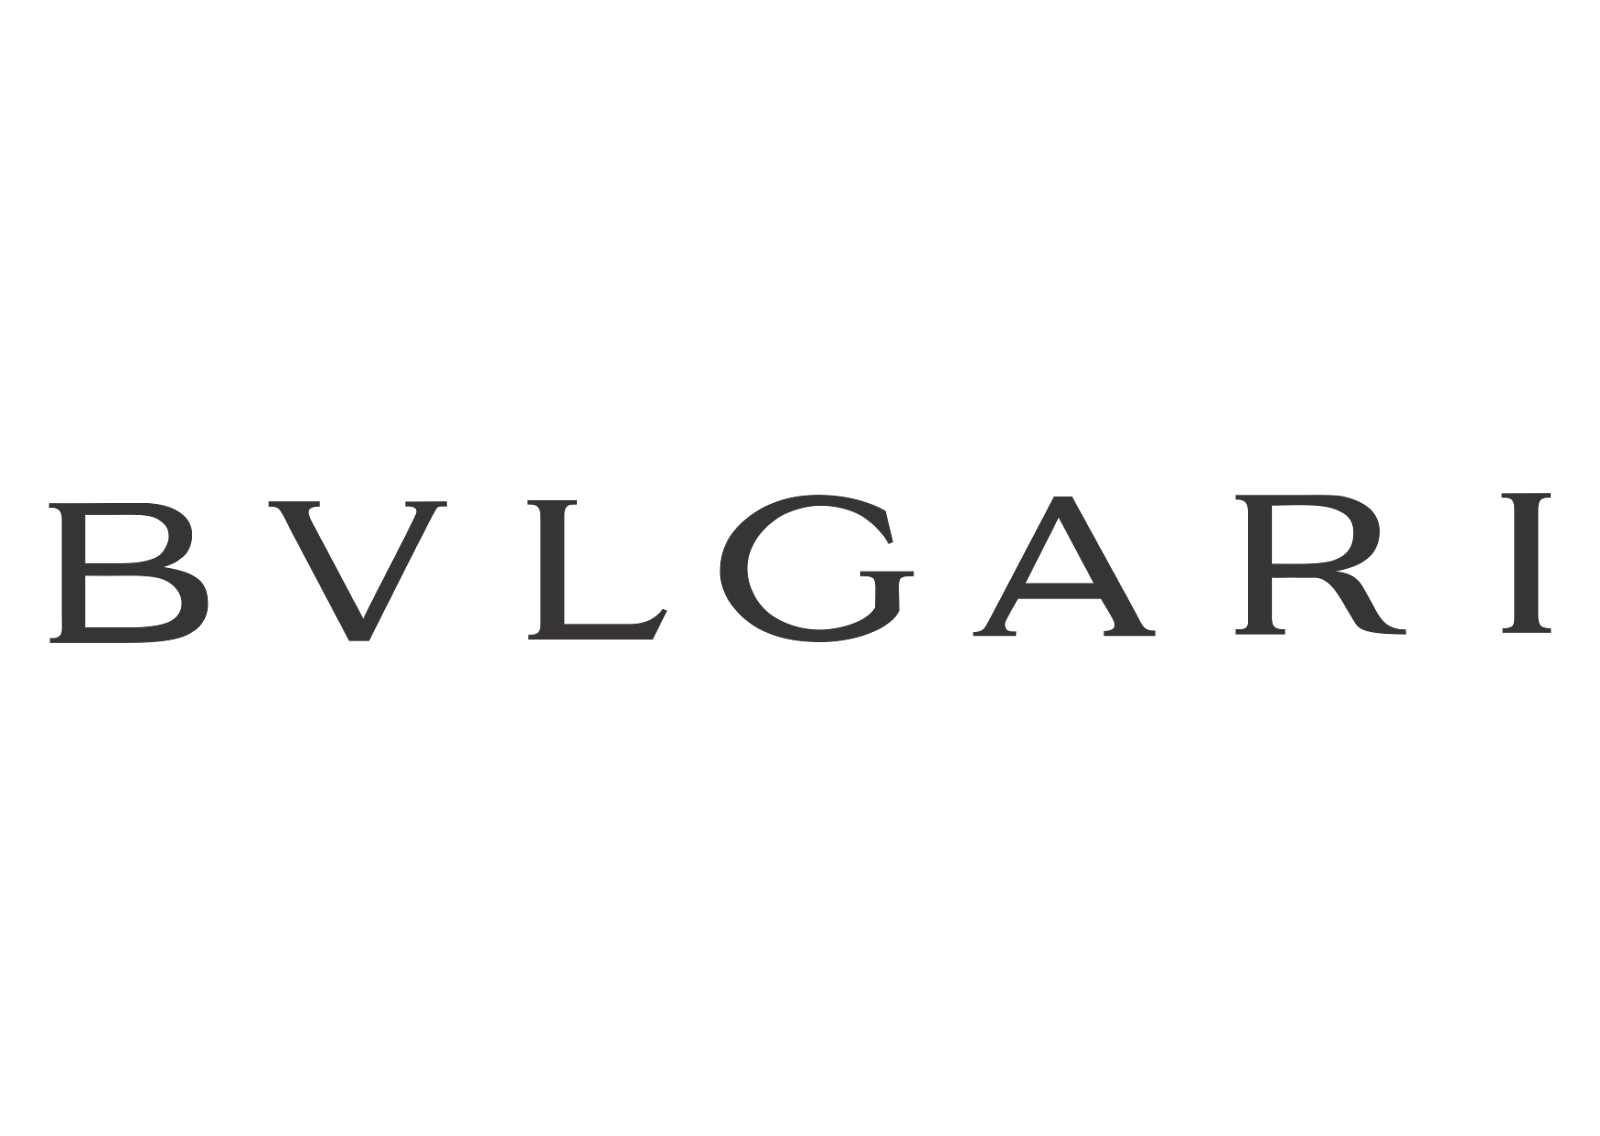 Bvlgari Vector Logo Wallpaper